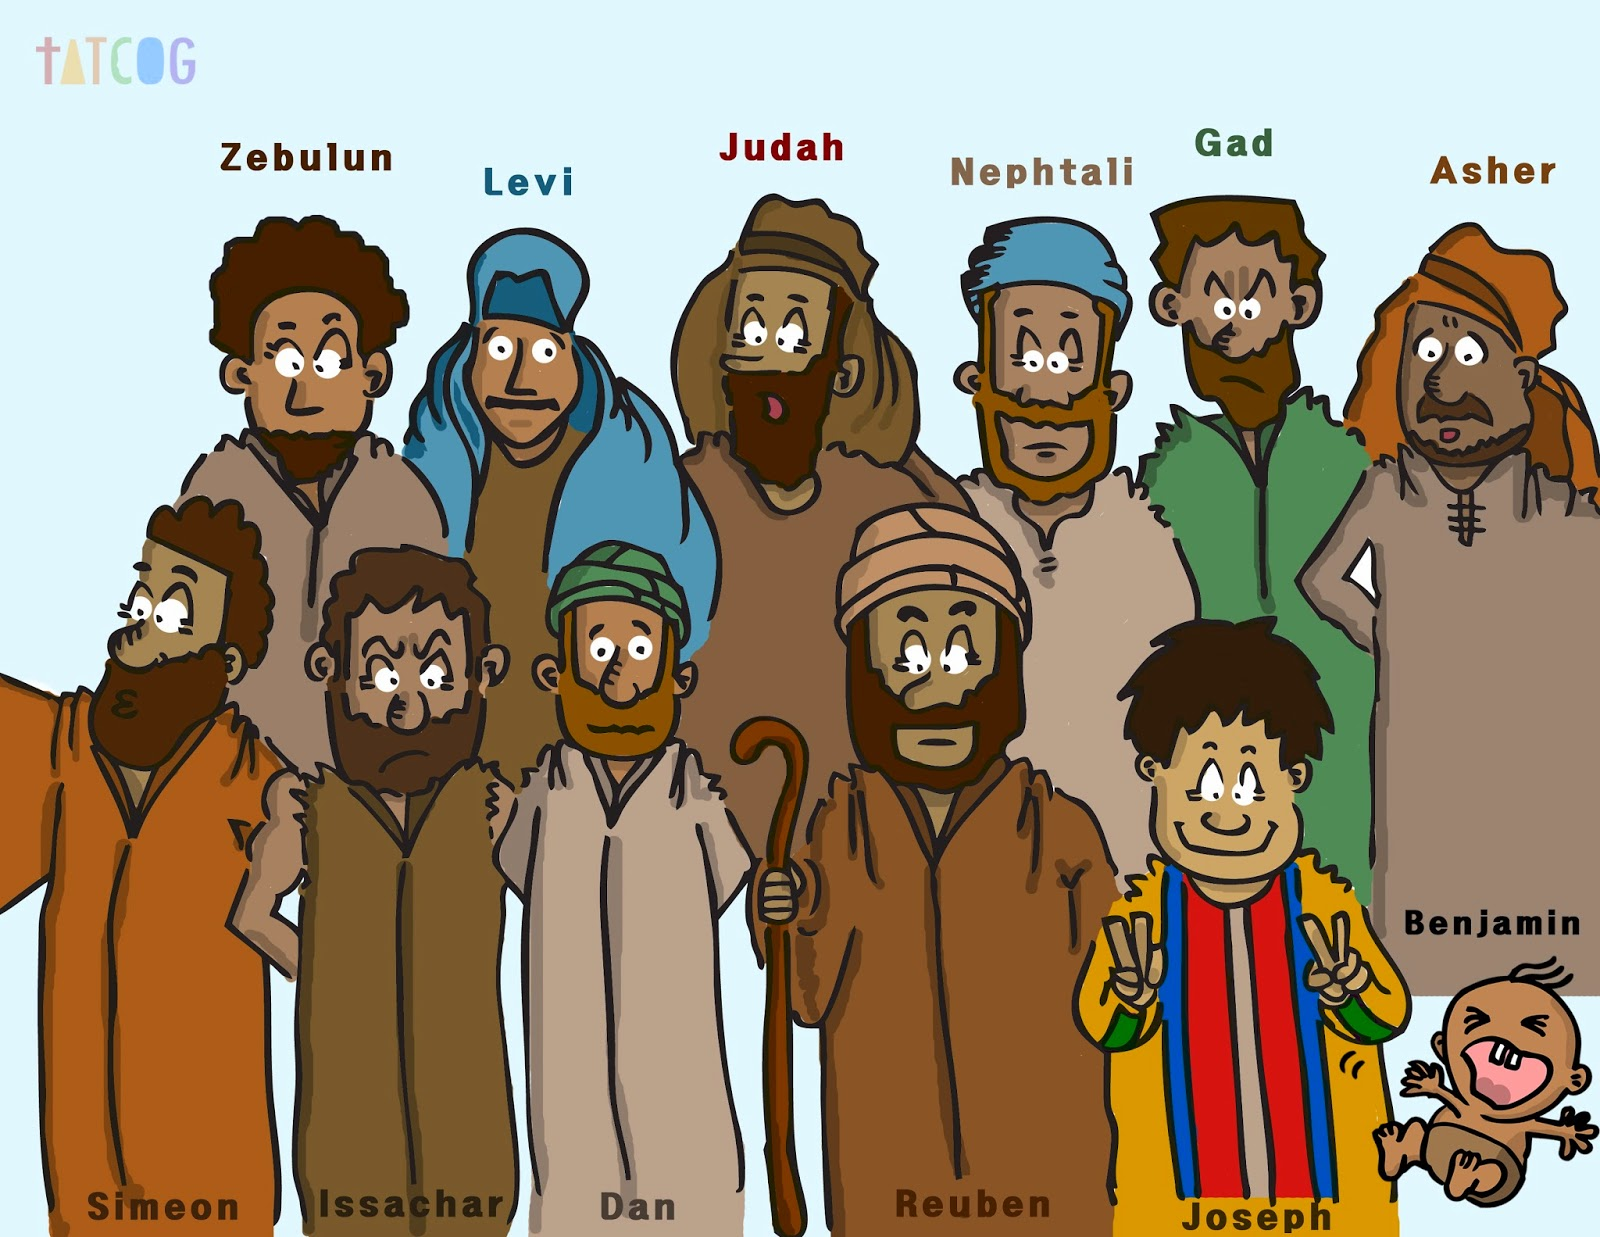 Abraham isaac and jacob clipart vector freeuse Jacob bible character clipart - ClipartFest vector freeuse